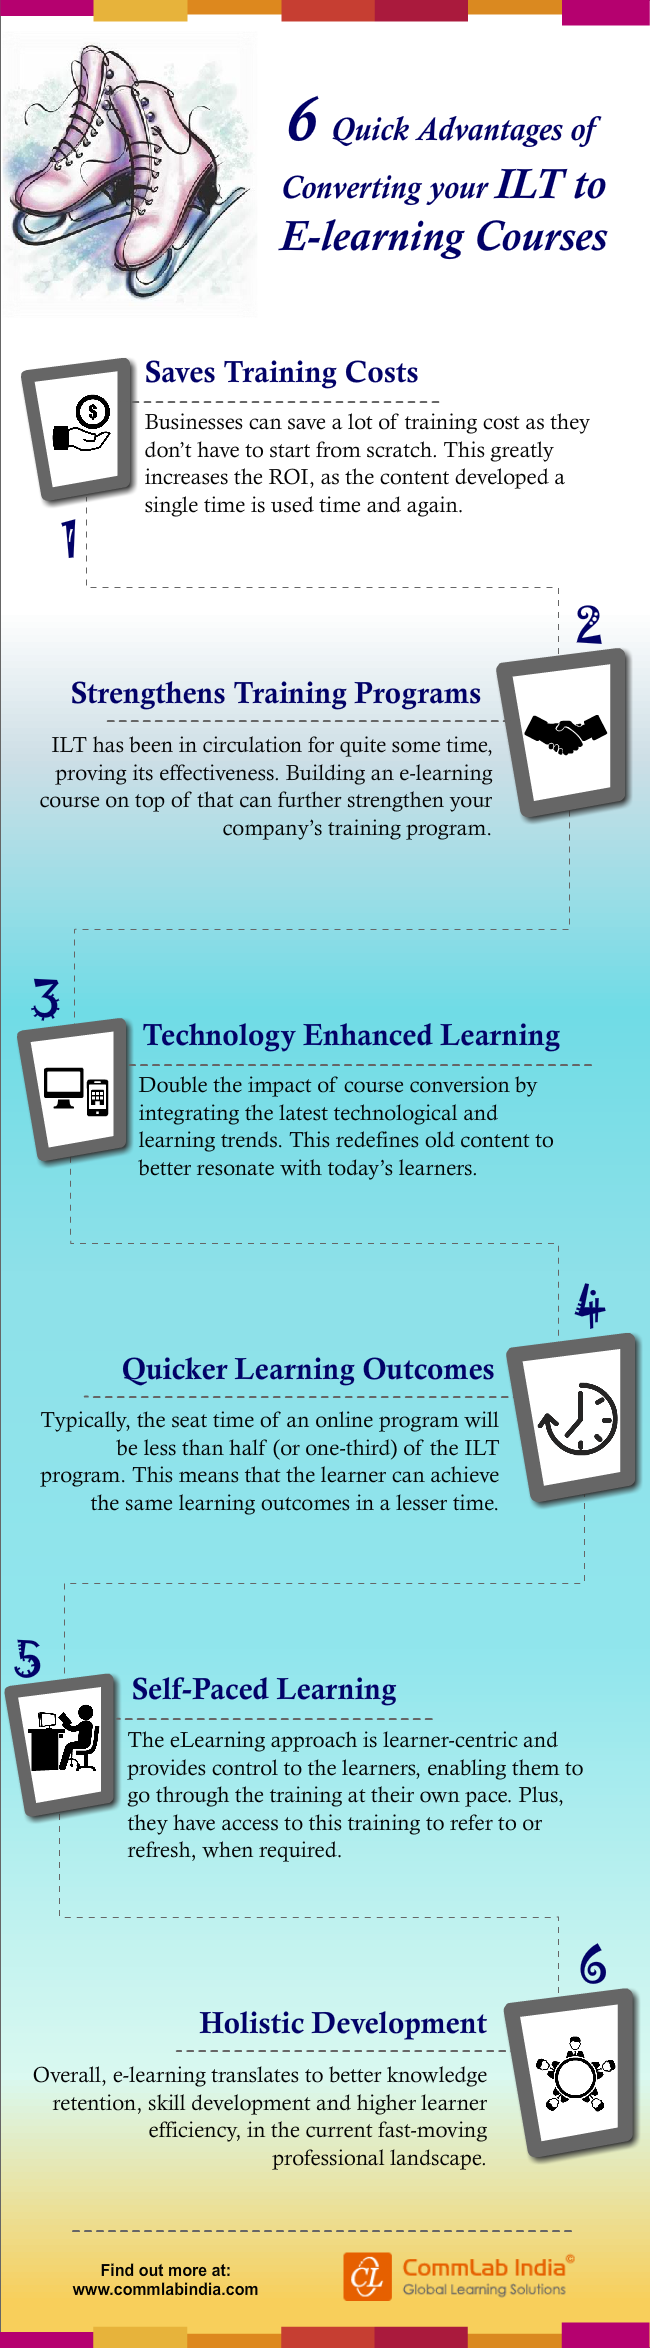 6 Quick Advantages of Converting Your ILT to E-learning Courses [Infographic]